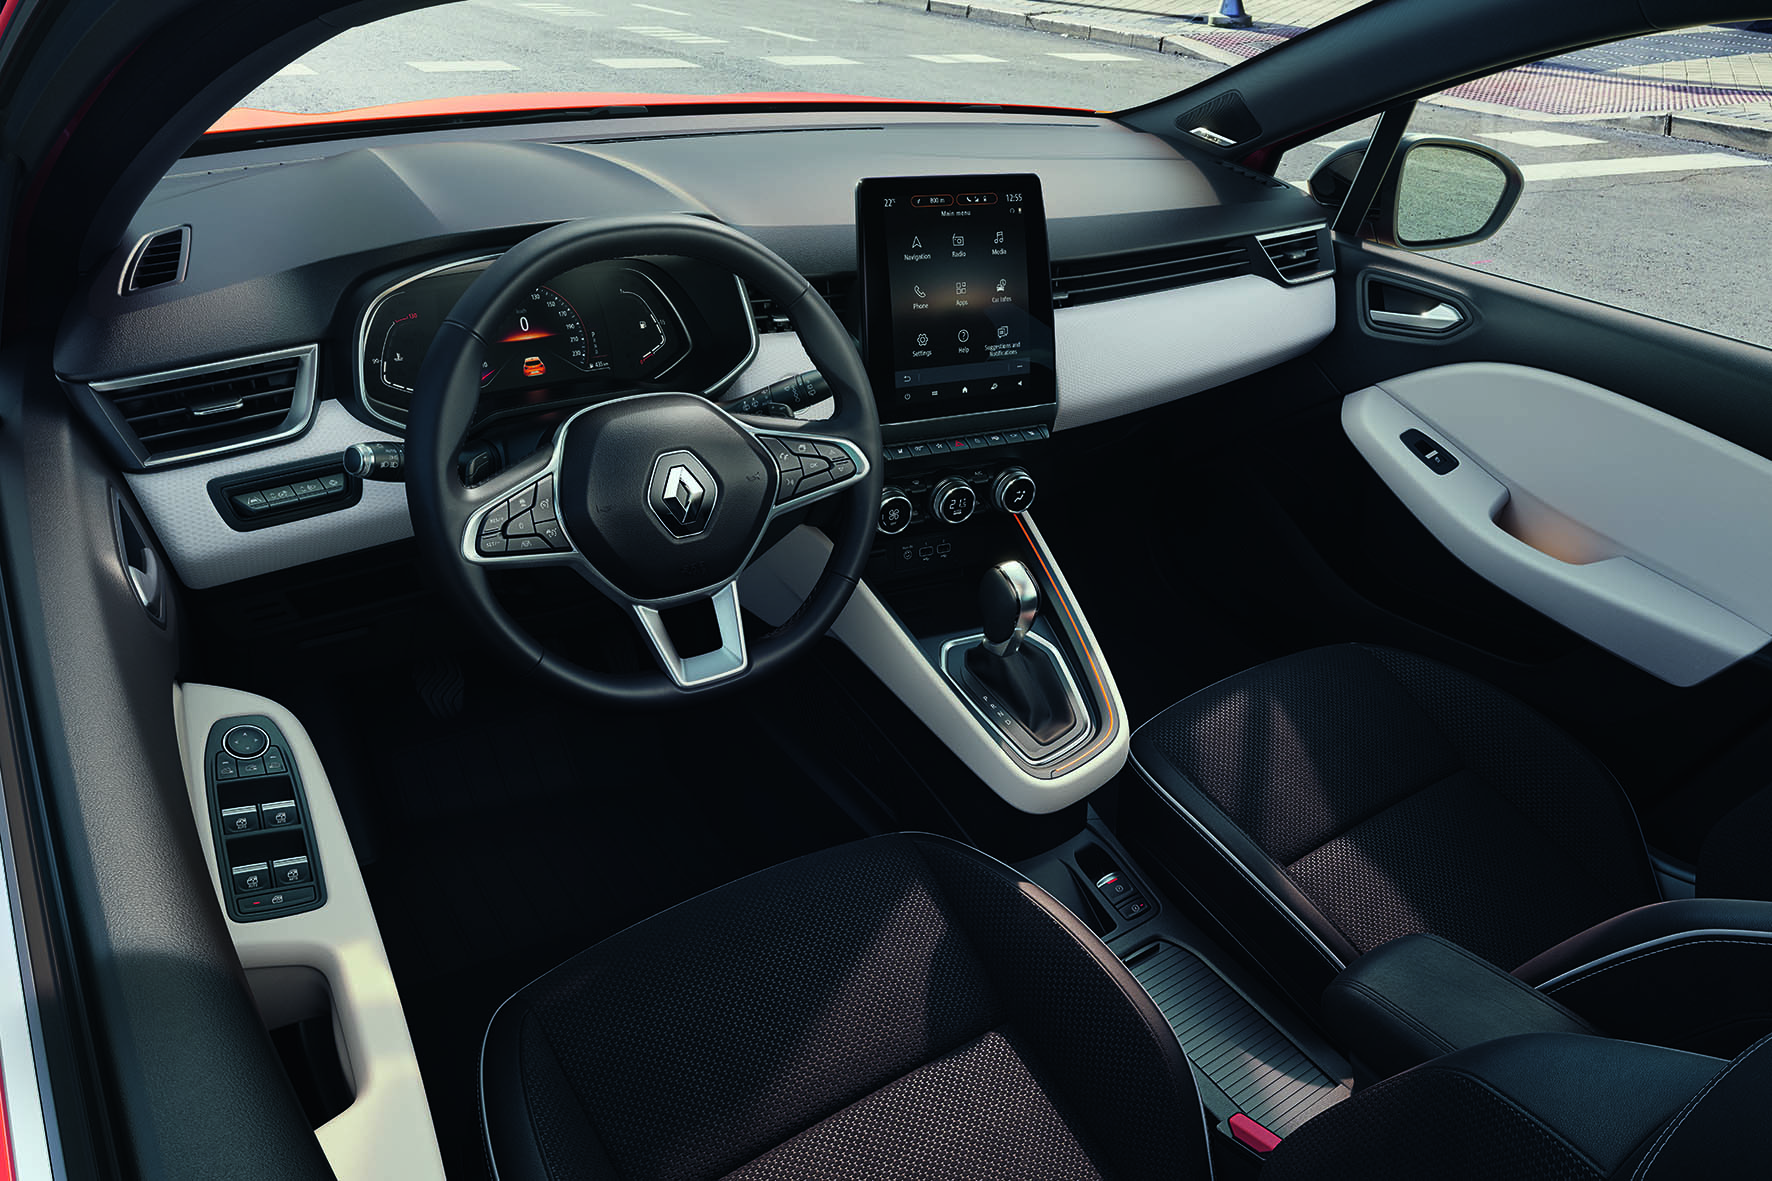 S And S Auto Sales >> 2019 Renault Clio V Interior Revealed, It's A Lot More ...